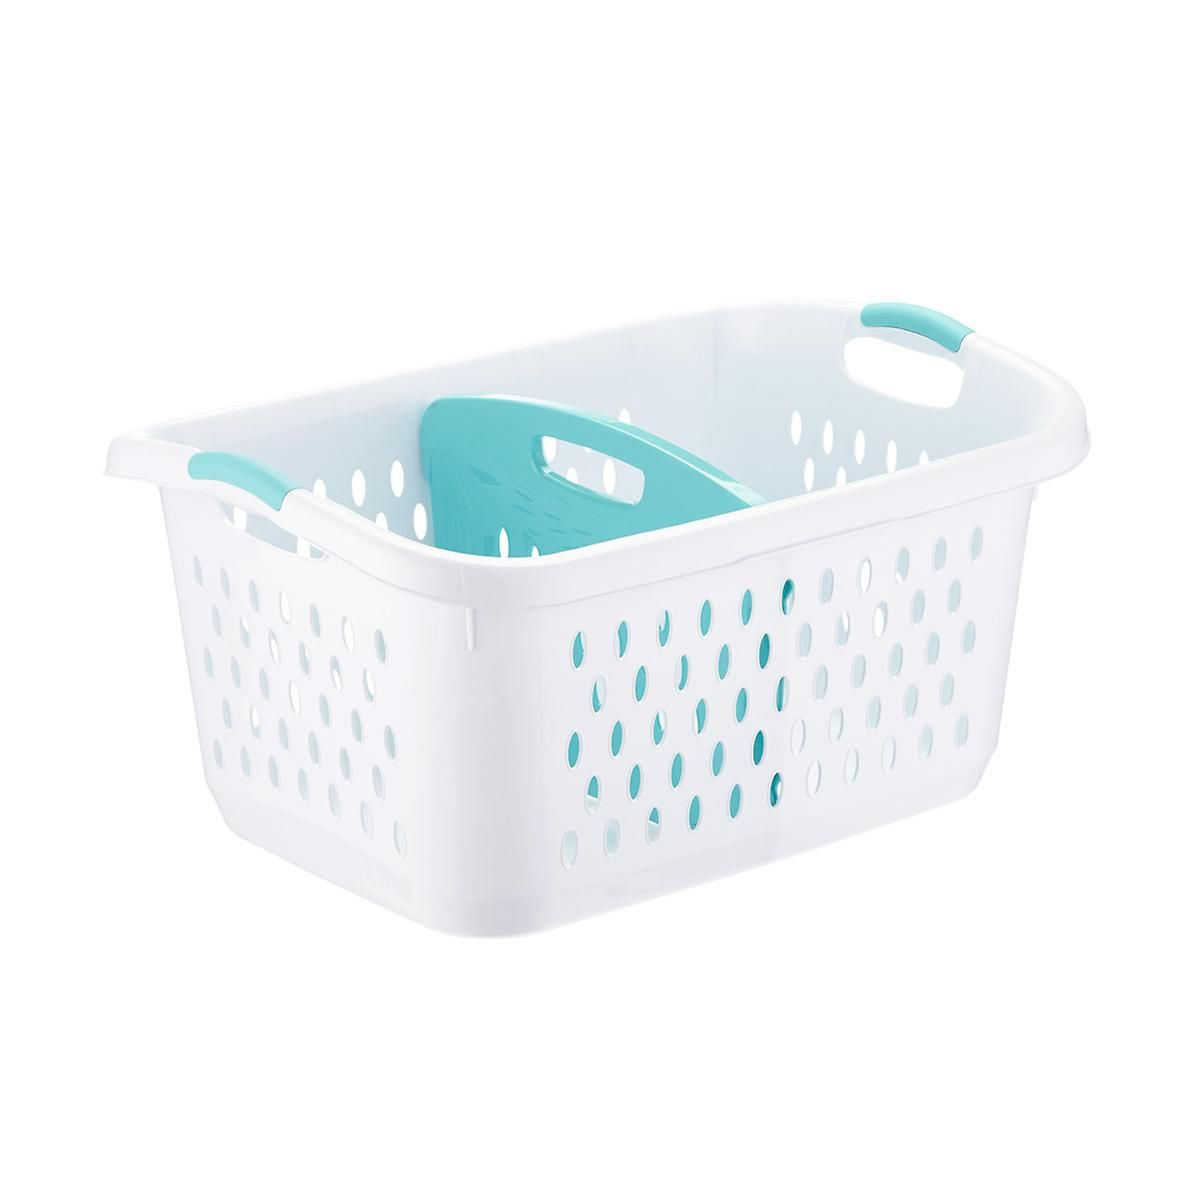 Sterilite Divided Laundry Basket Divided Laundry Basket Laundry